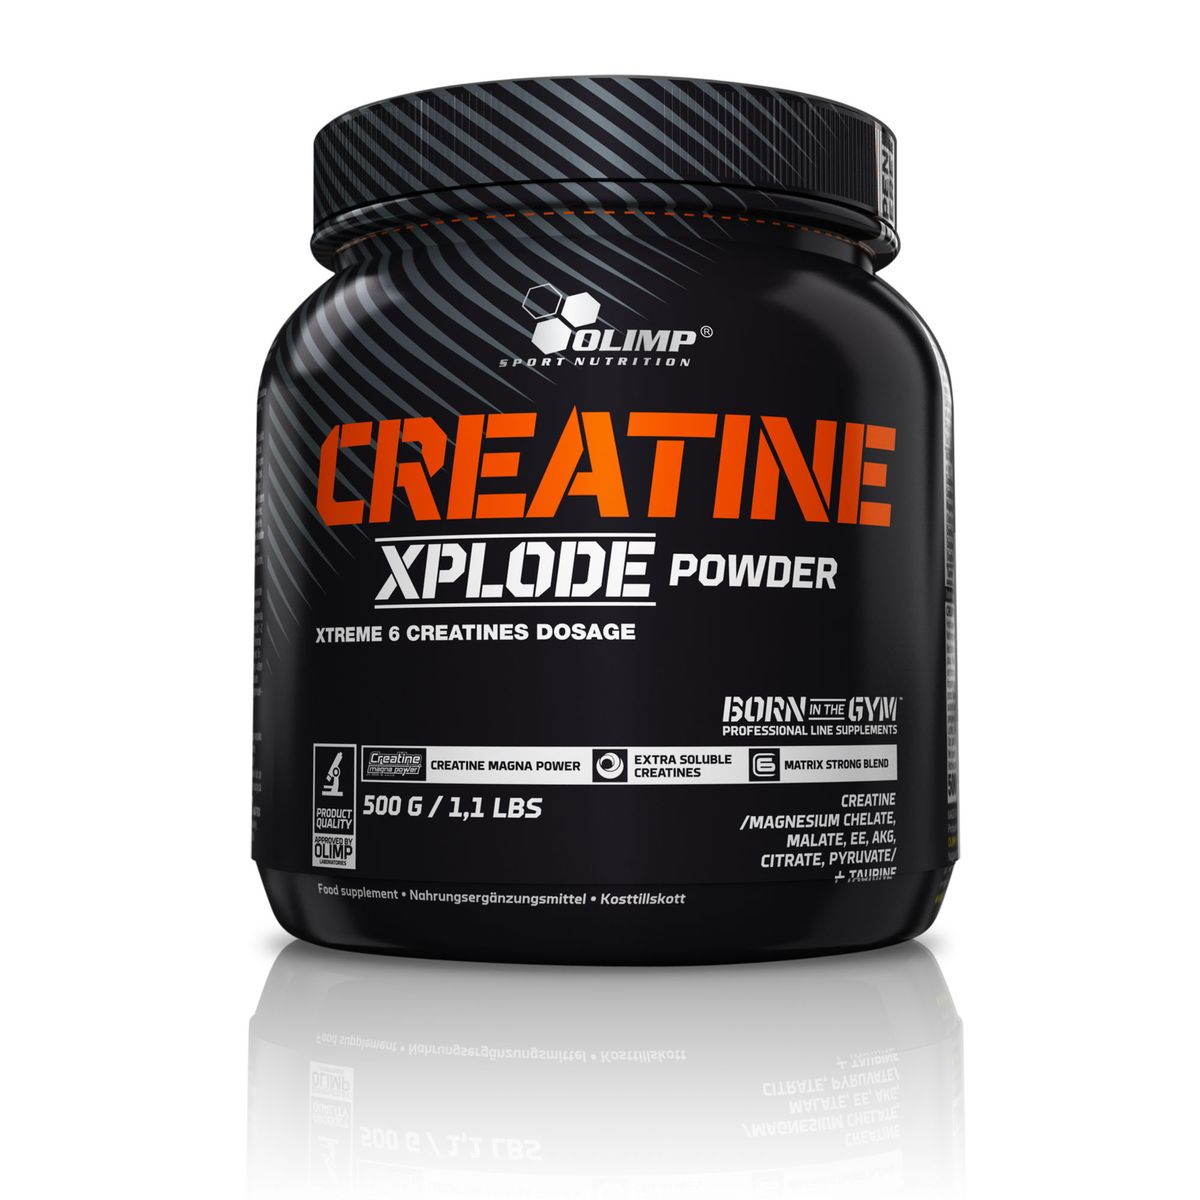 Креатин Olimp Sport Nutrition Creatine Xplode Powder, апельсин, 500 г креатин atech nutrition creatine monohydrate 100% 300 г